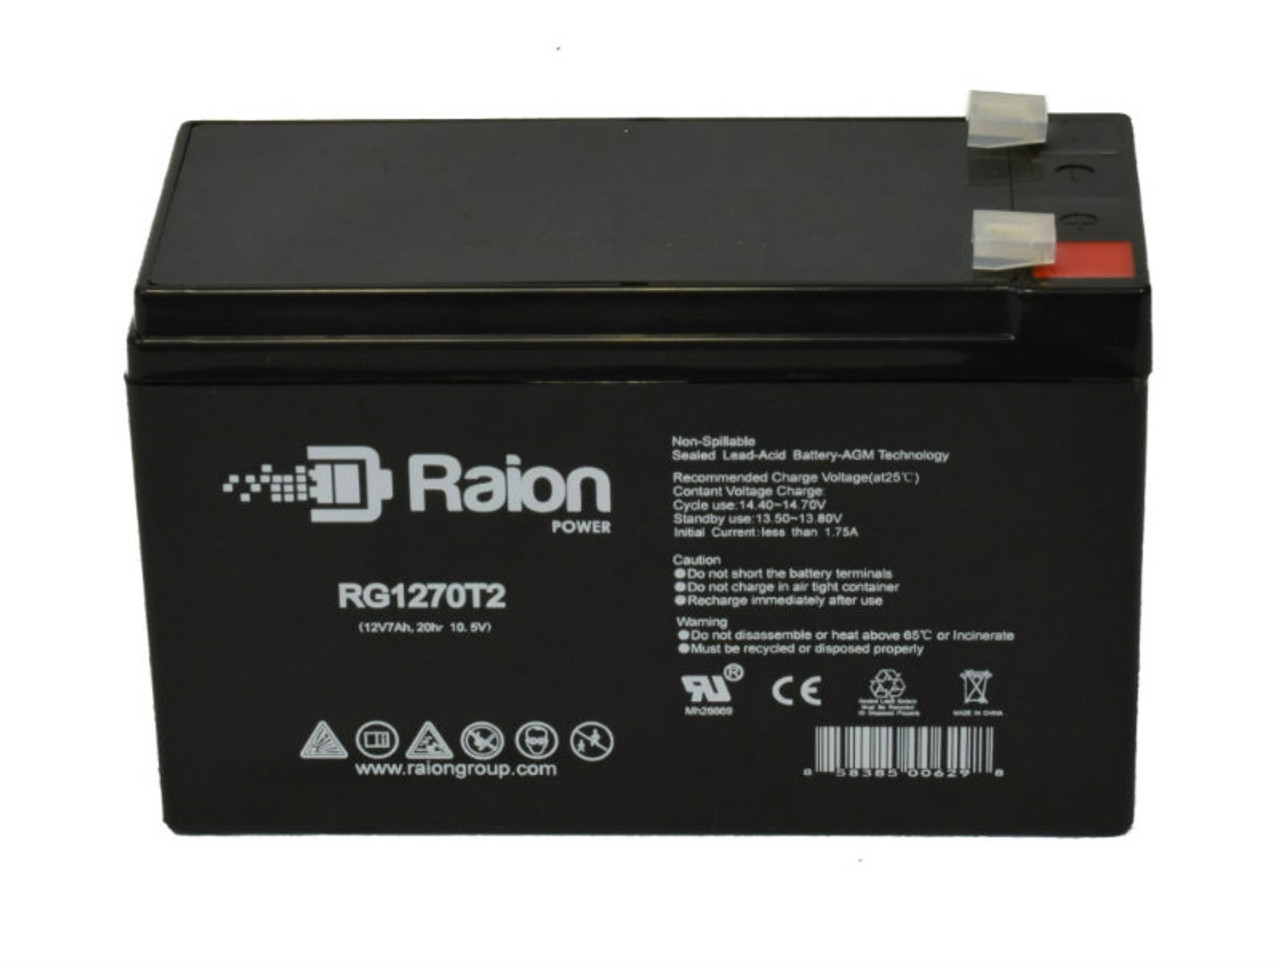 Raion Power 12V 7Ah SLA Battery With T1 Terminals For ExpertPower EXP1270